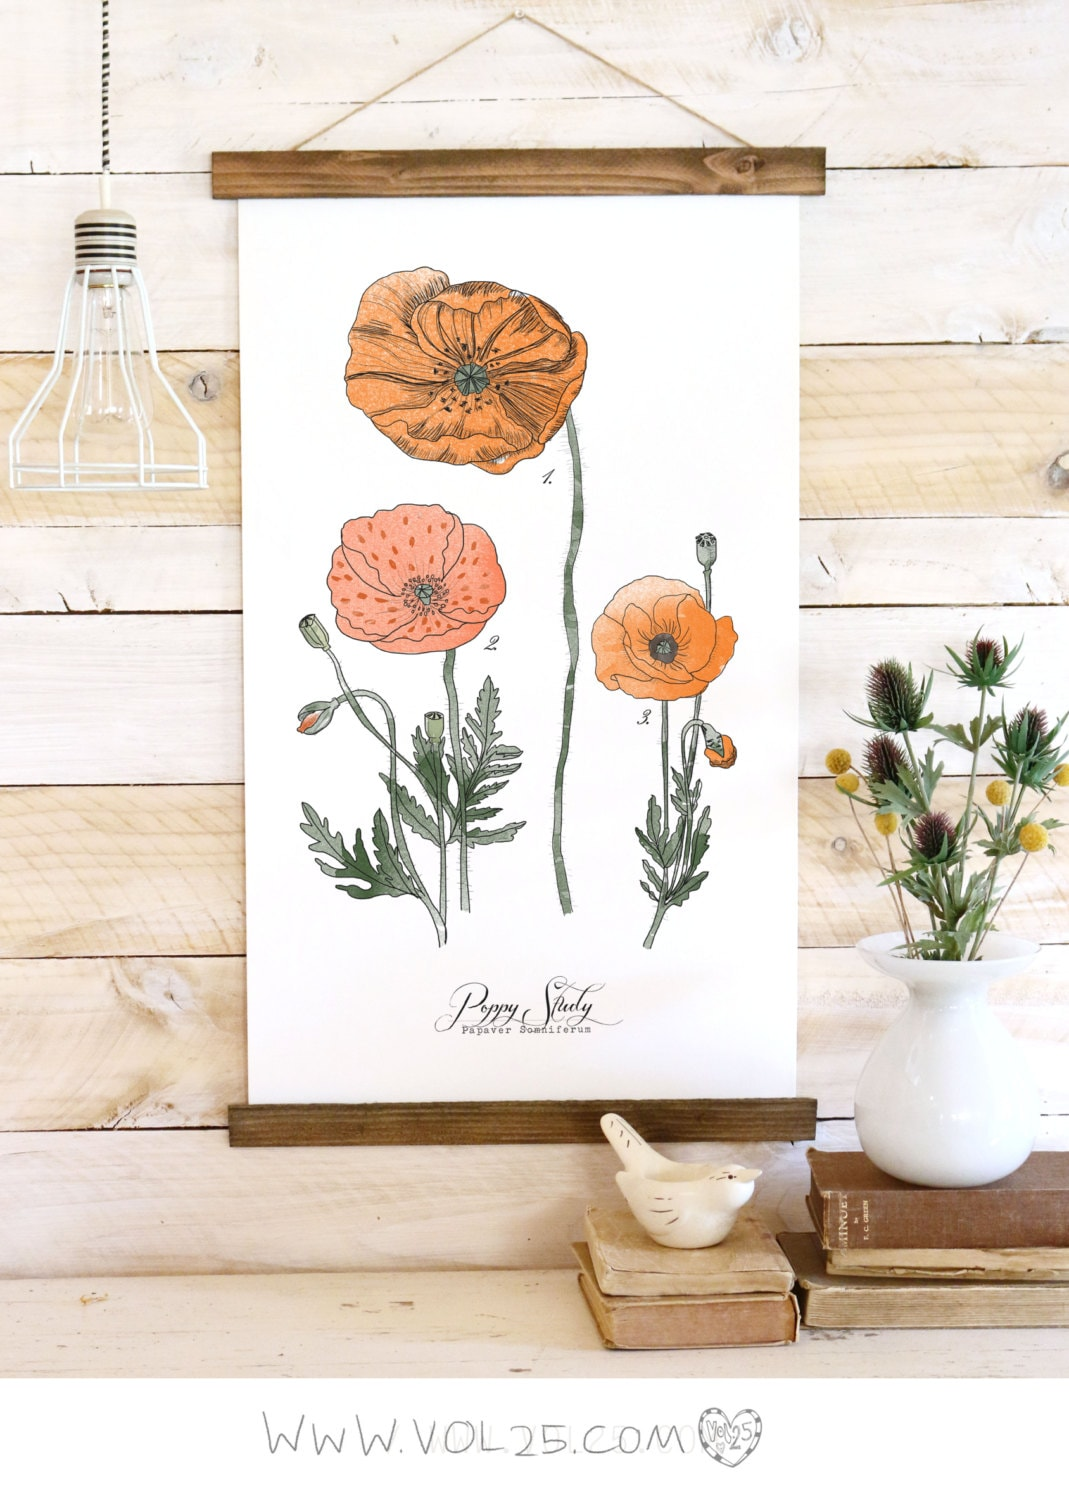 Poppy Study Botanical Watercolor Wall Hanging Wood Trim Art